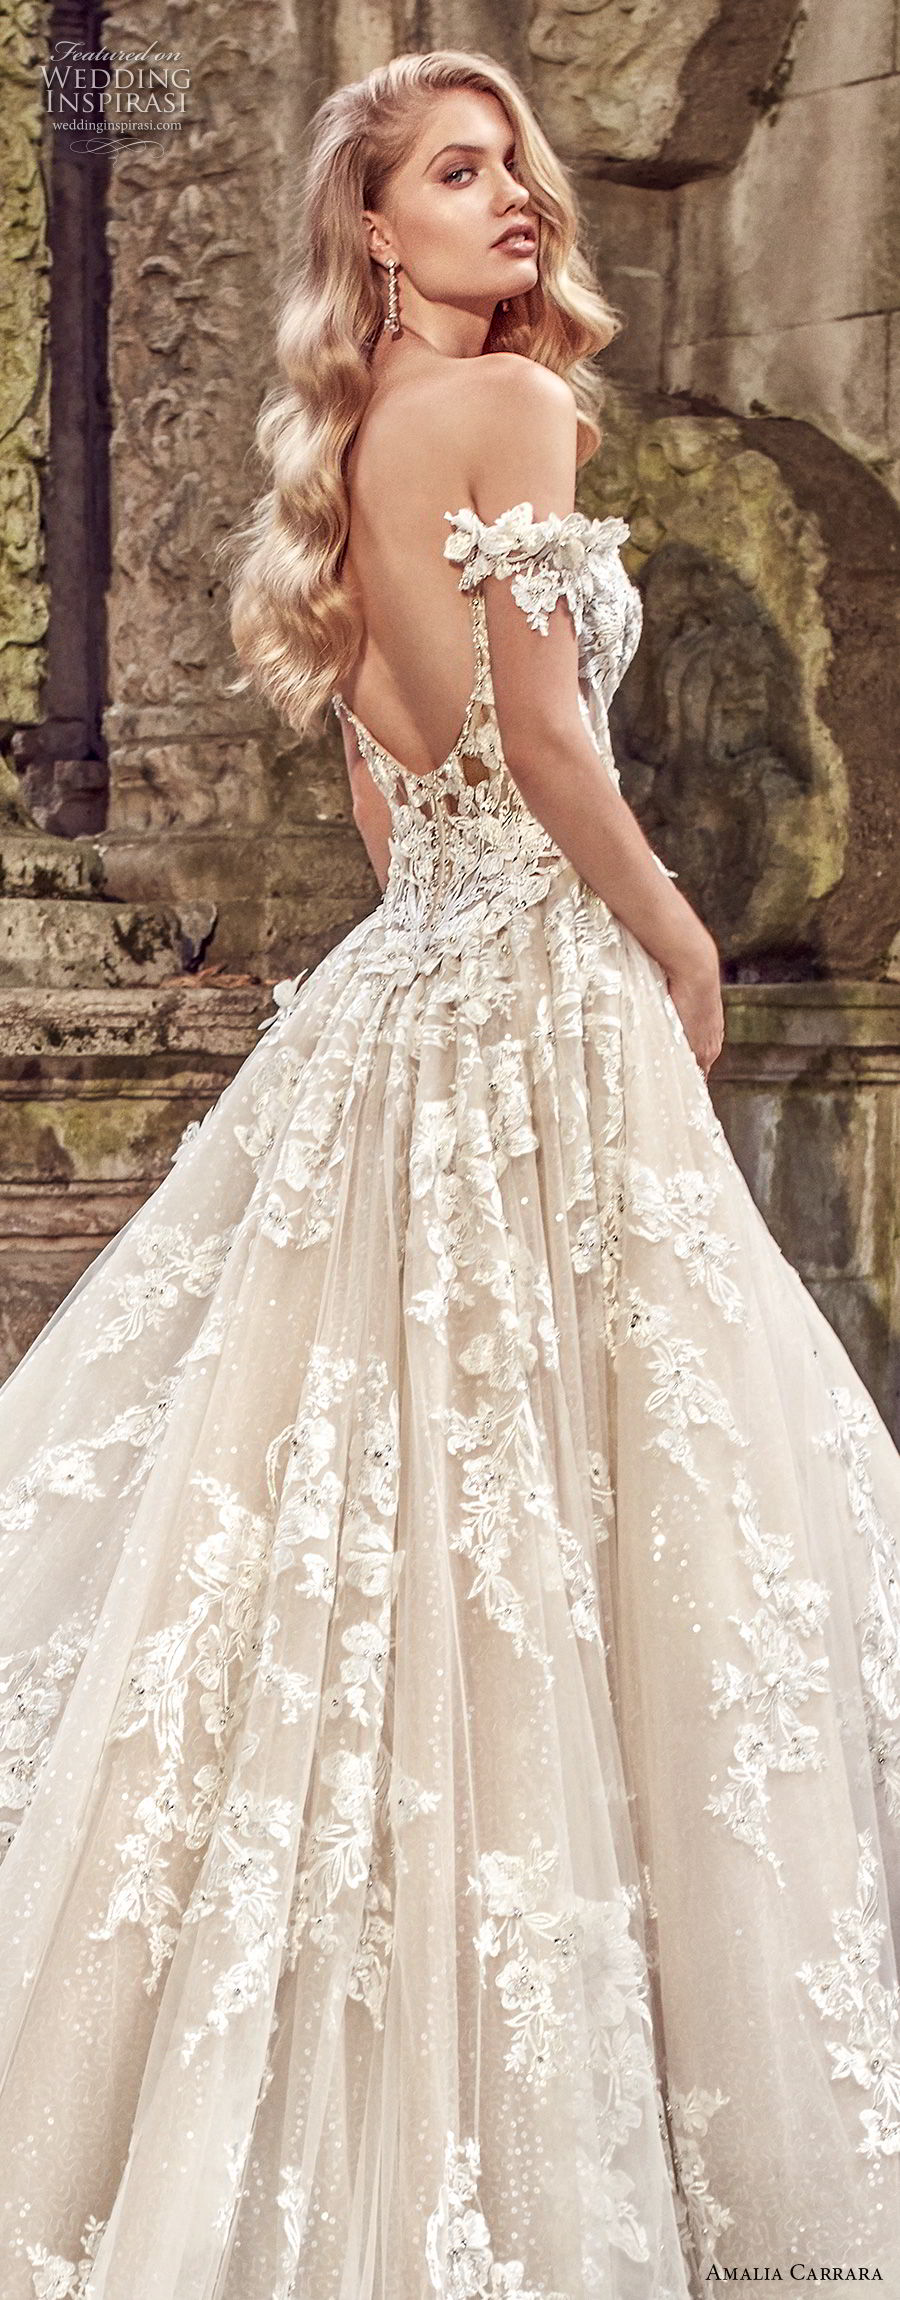 amalia carrara spring 2018 bridal off the shoulder sweetheart neckline heavily embellished bodice romantic princess a  line wedding dress open back royal train (1) zbv